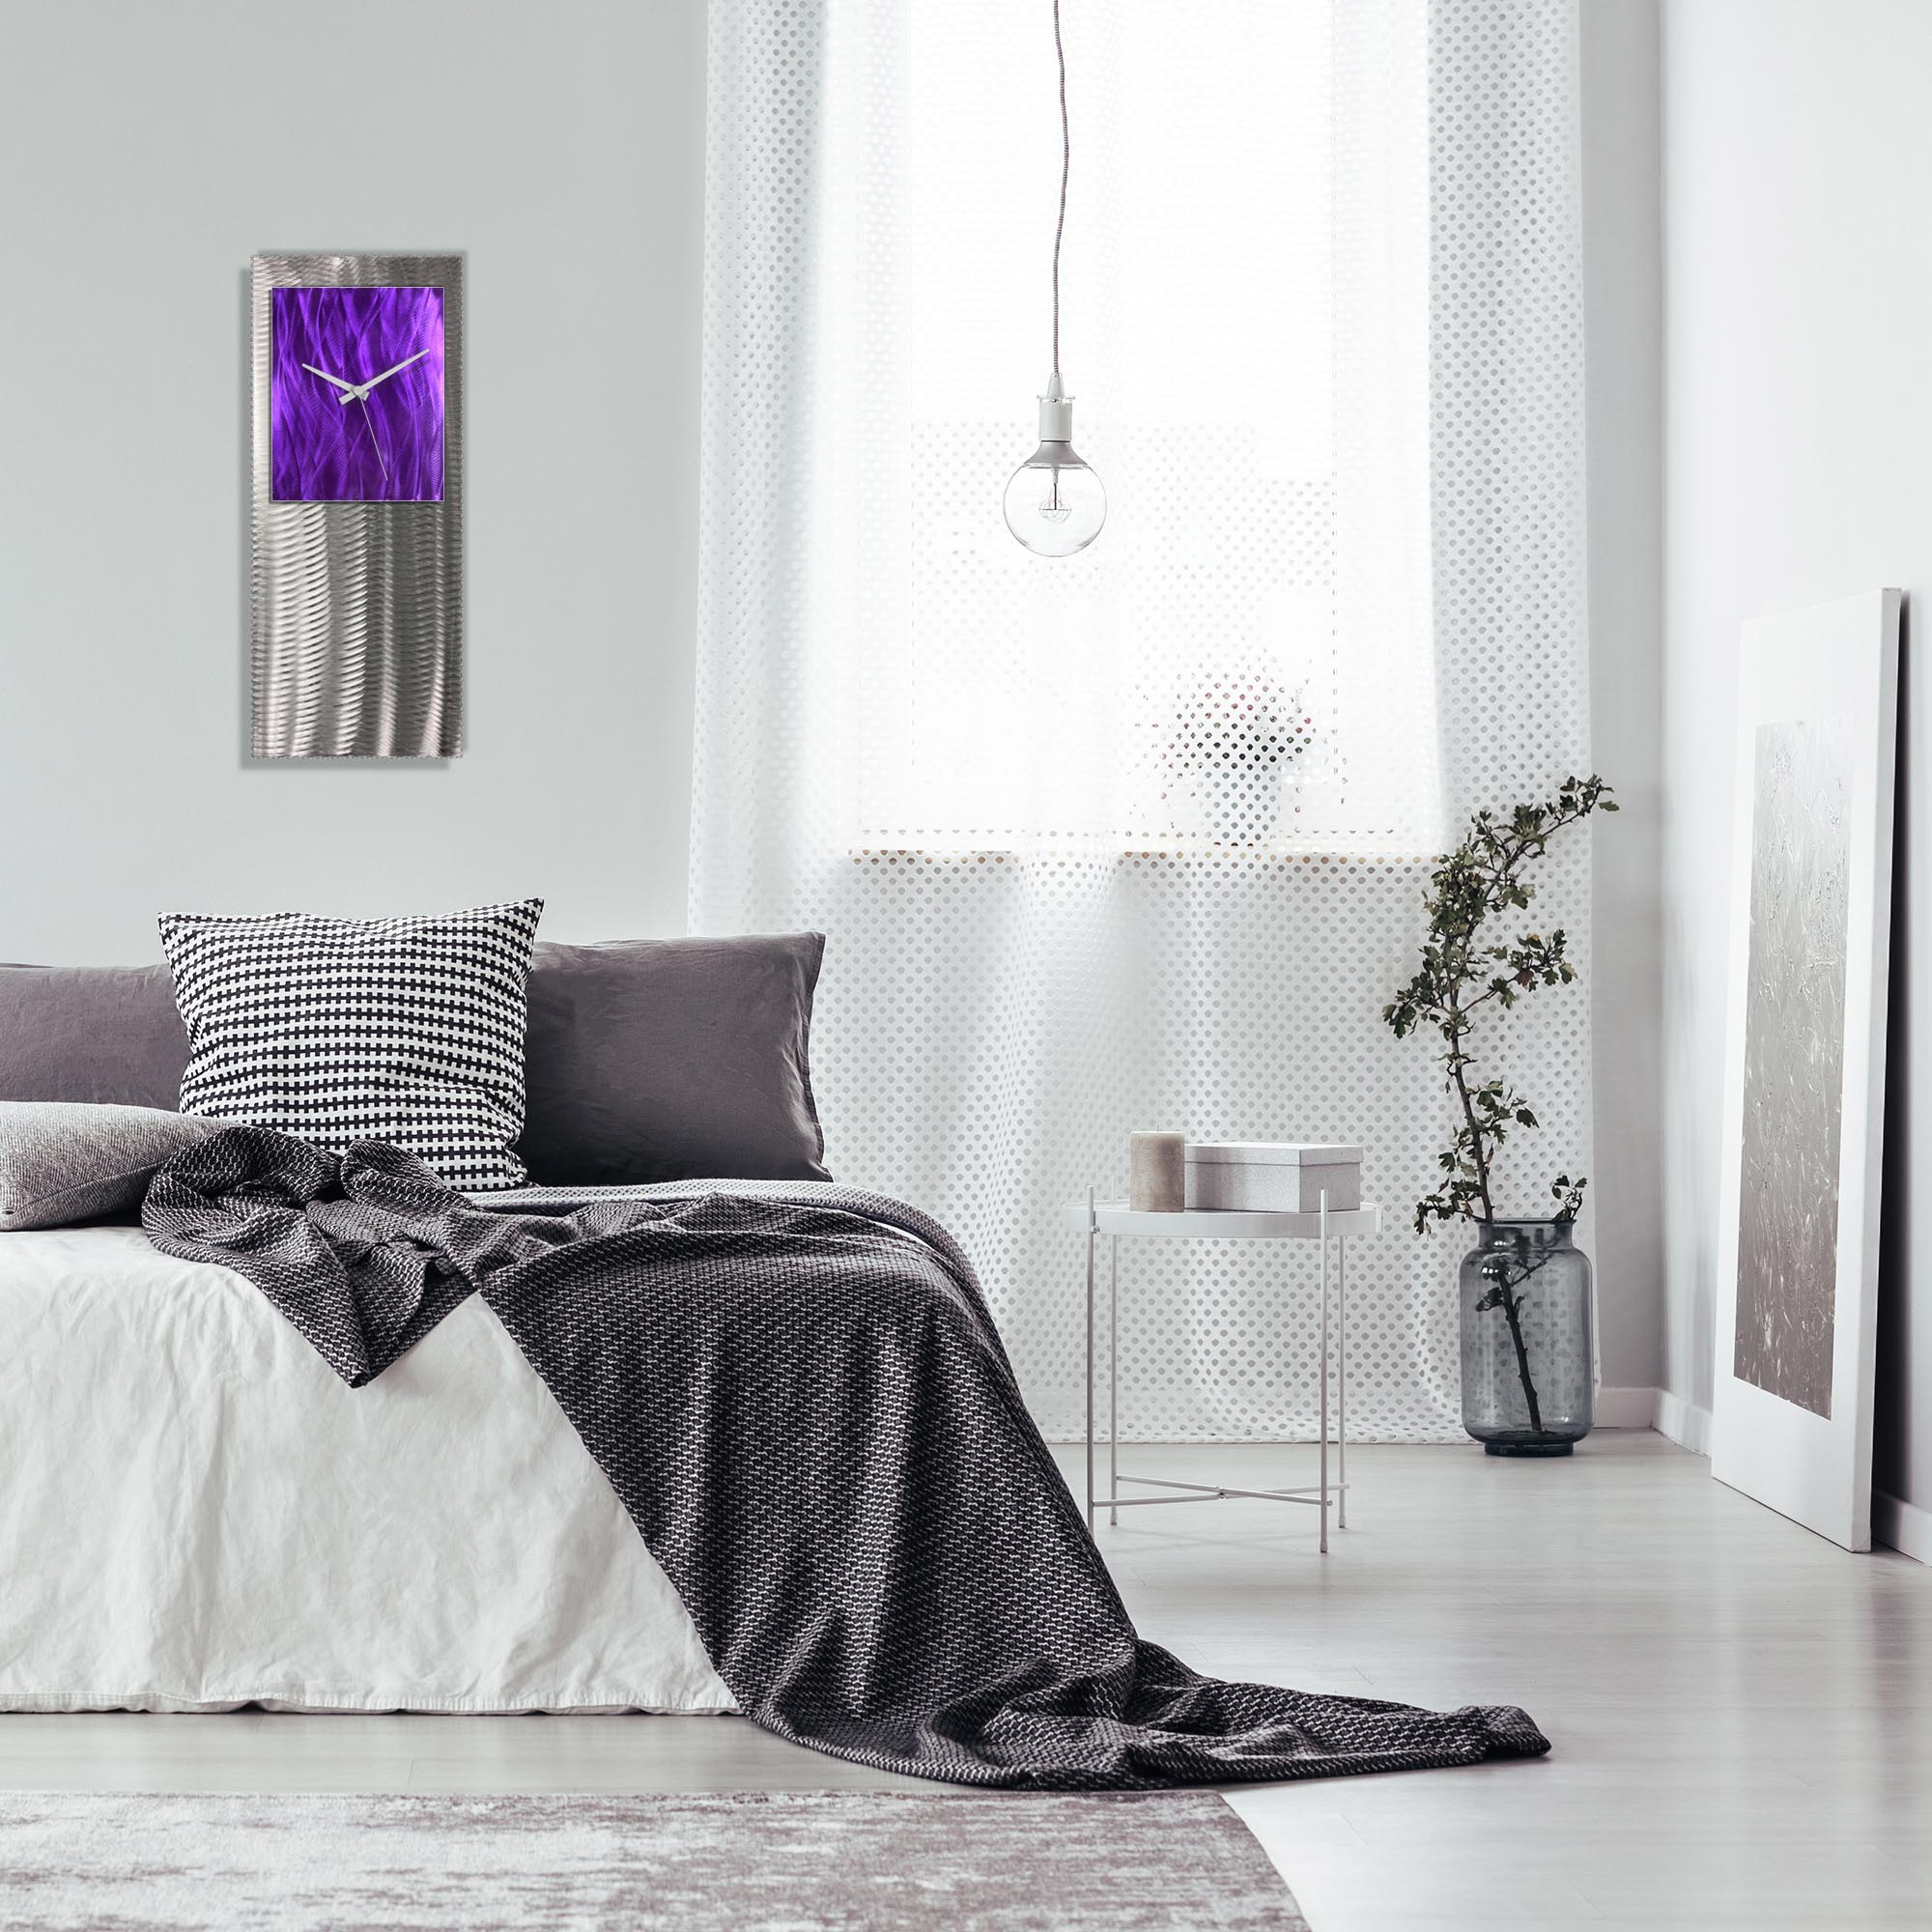 Metal Art Studio Abstract Decor Purple Studio Clock 10in x 24in - Lifestyle View